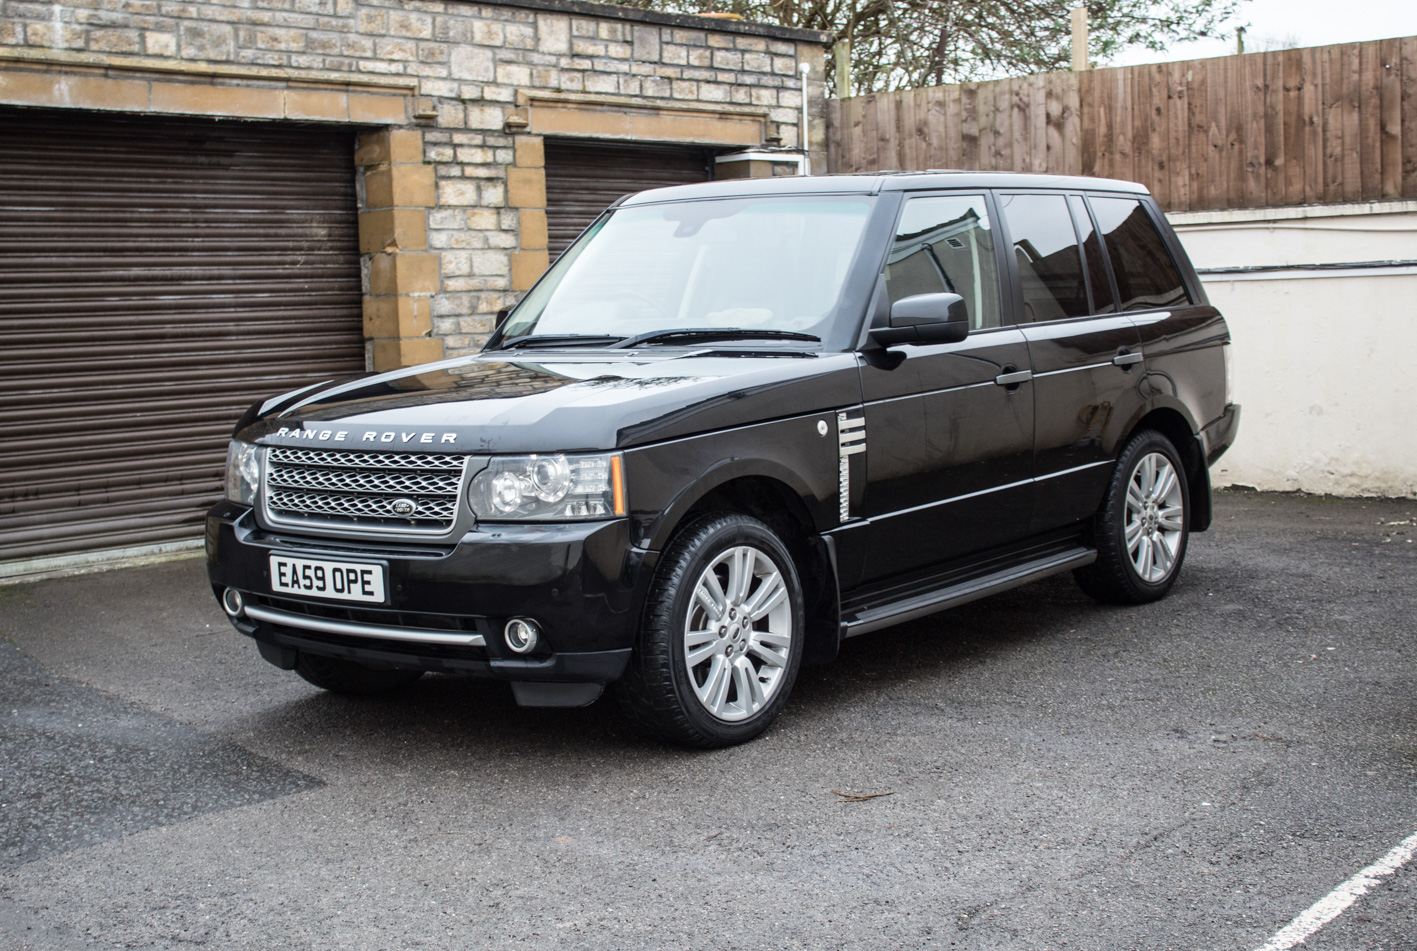 sold 2010 range rover vogue cars of somerset. Black Bedroom Furniture Sets. Home Design Ideas